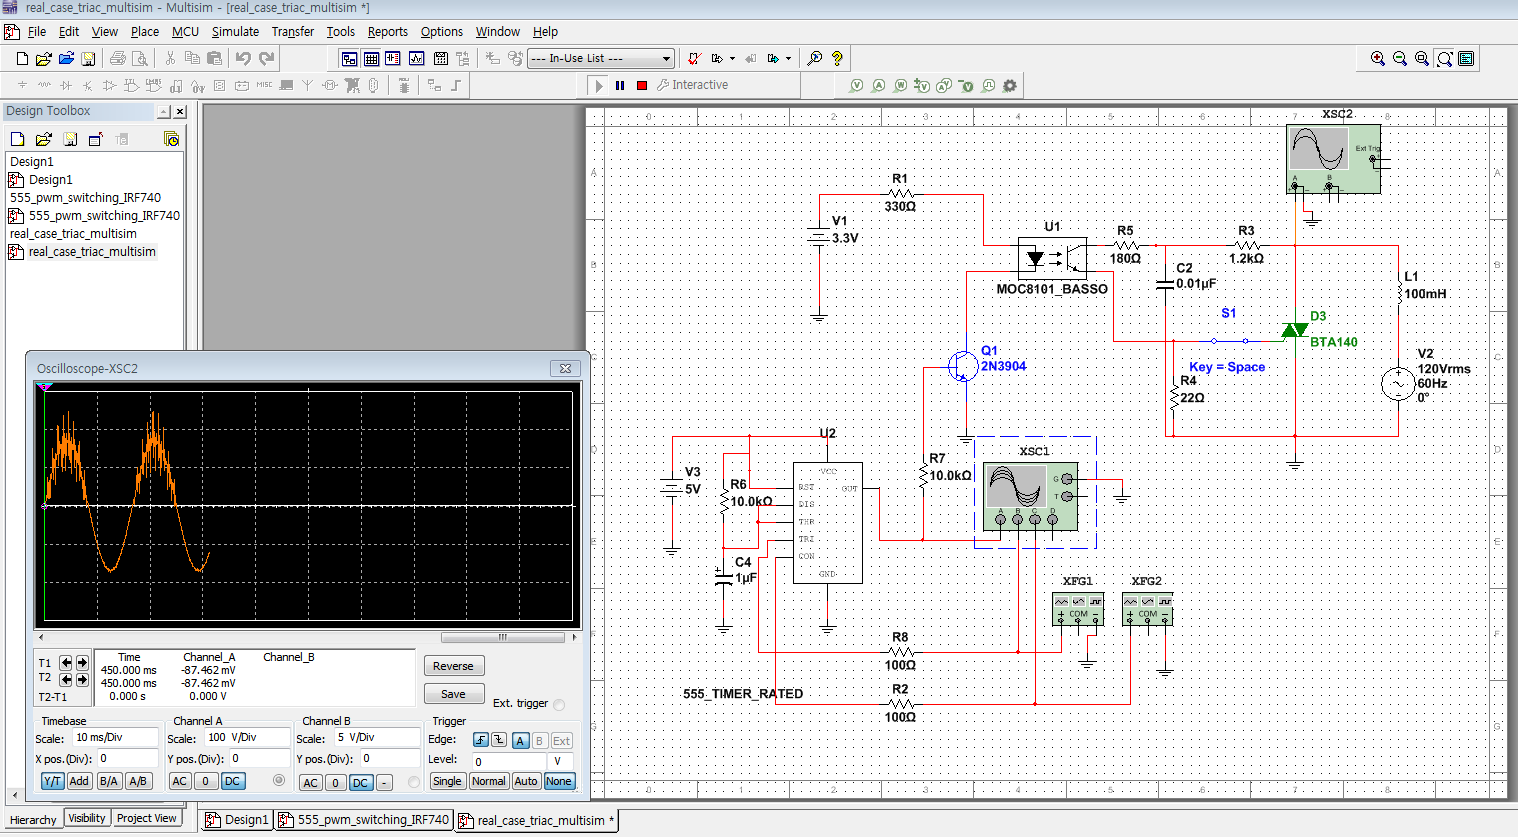 Sawtooth Generator Circuit 555 Electrical Work Wiring Diagram Timer Ramp Simulation Error At Ad633 Multiplier With From Discussion Forums Op Amp